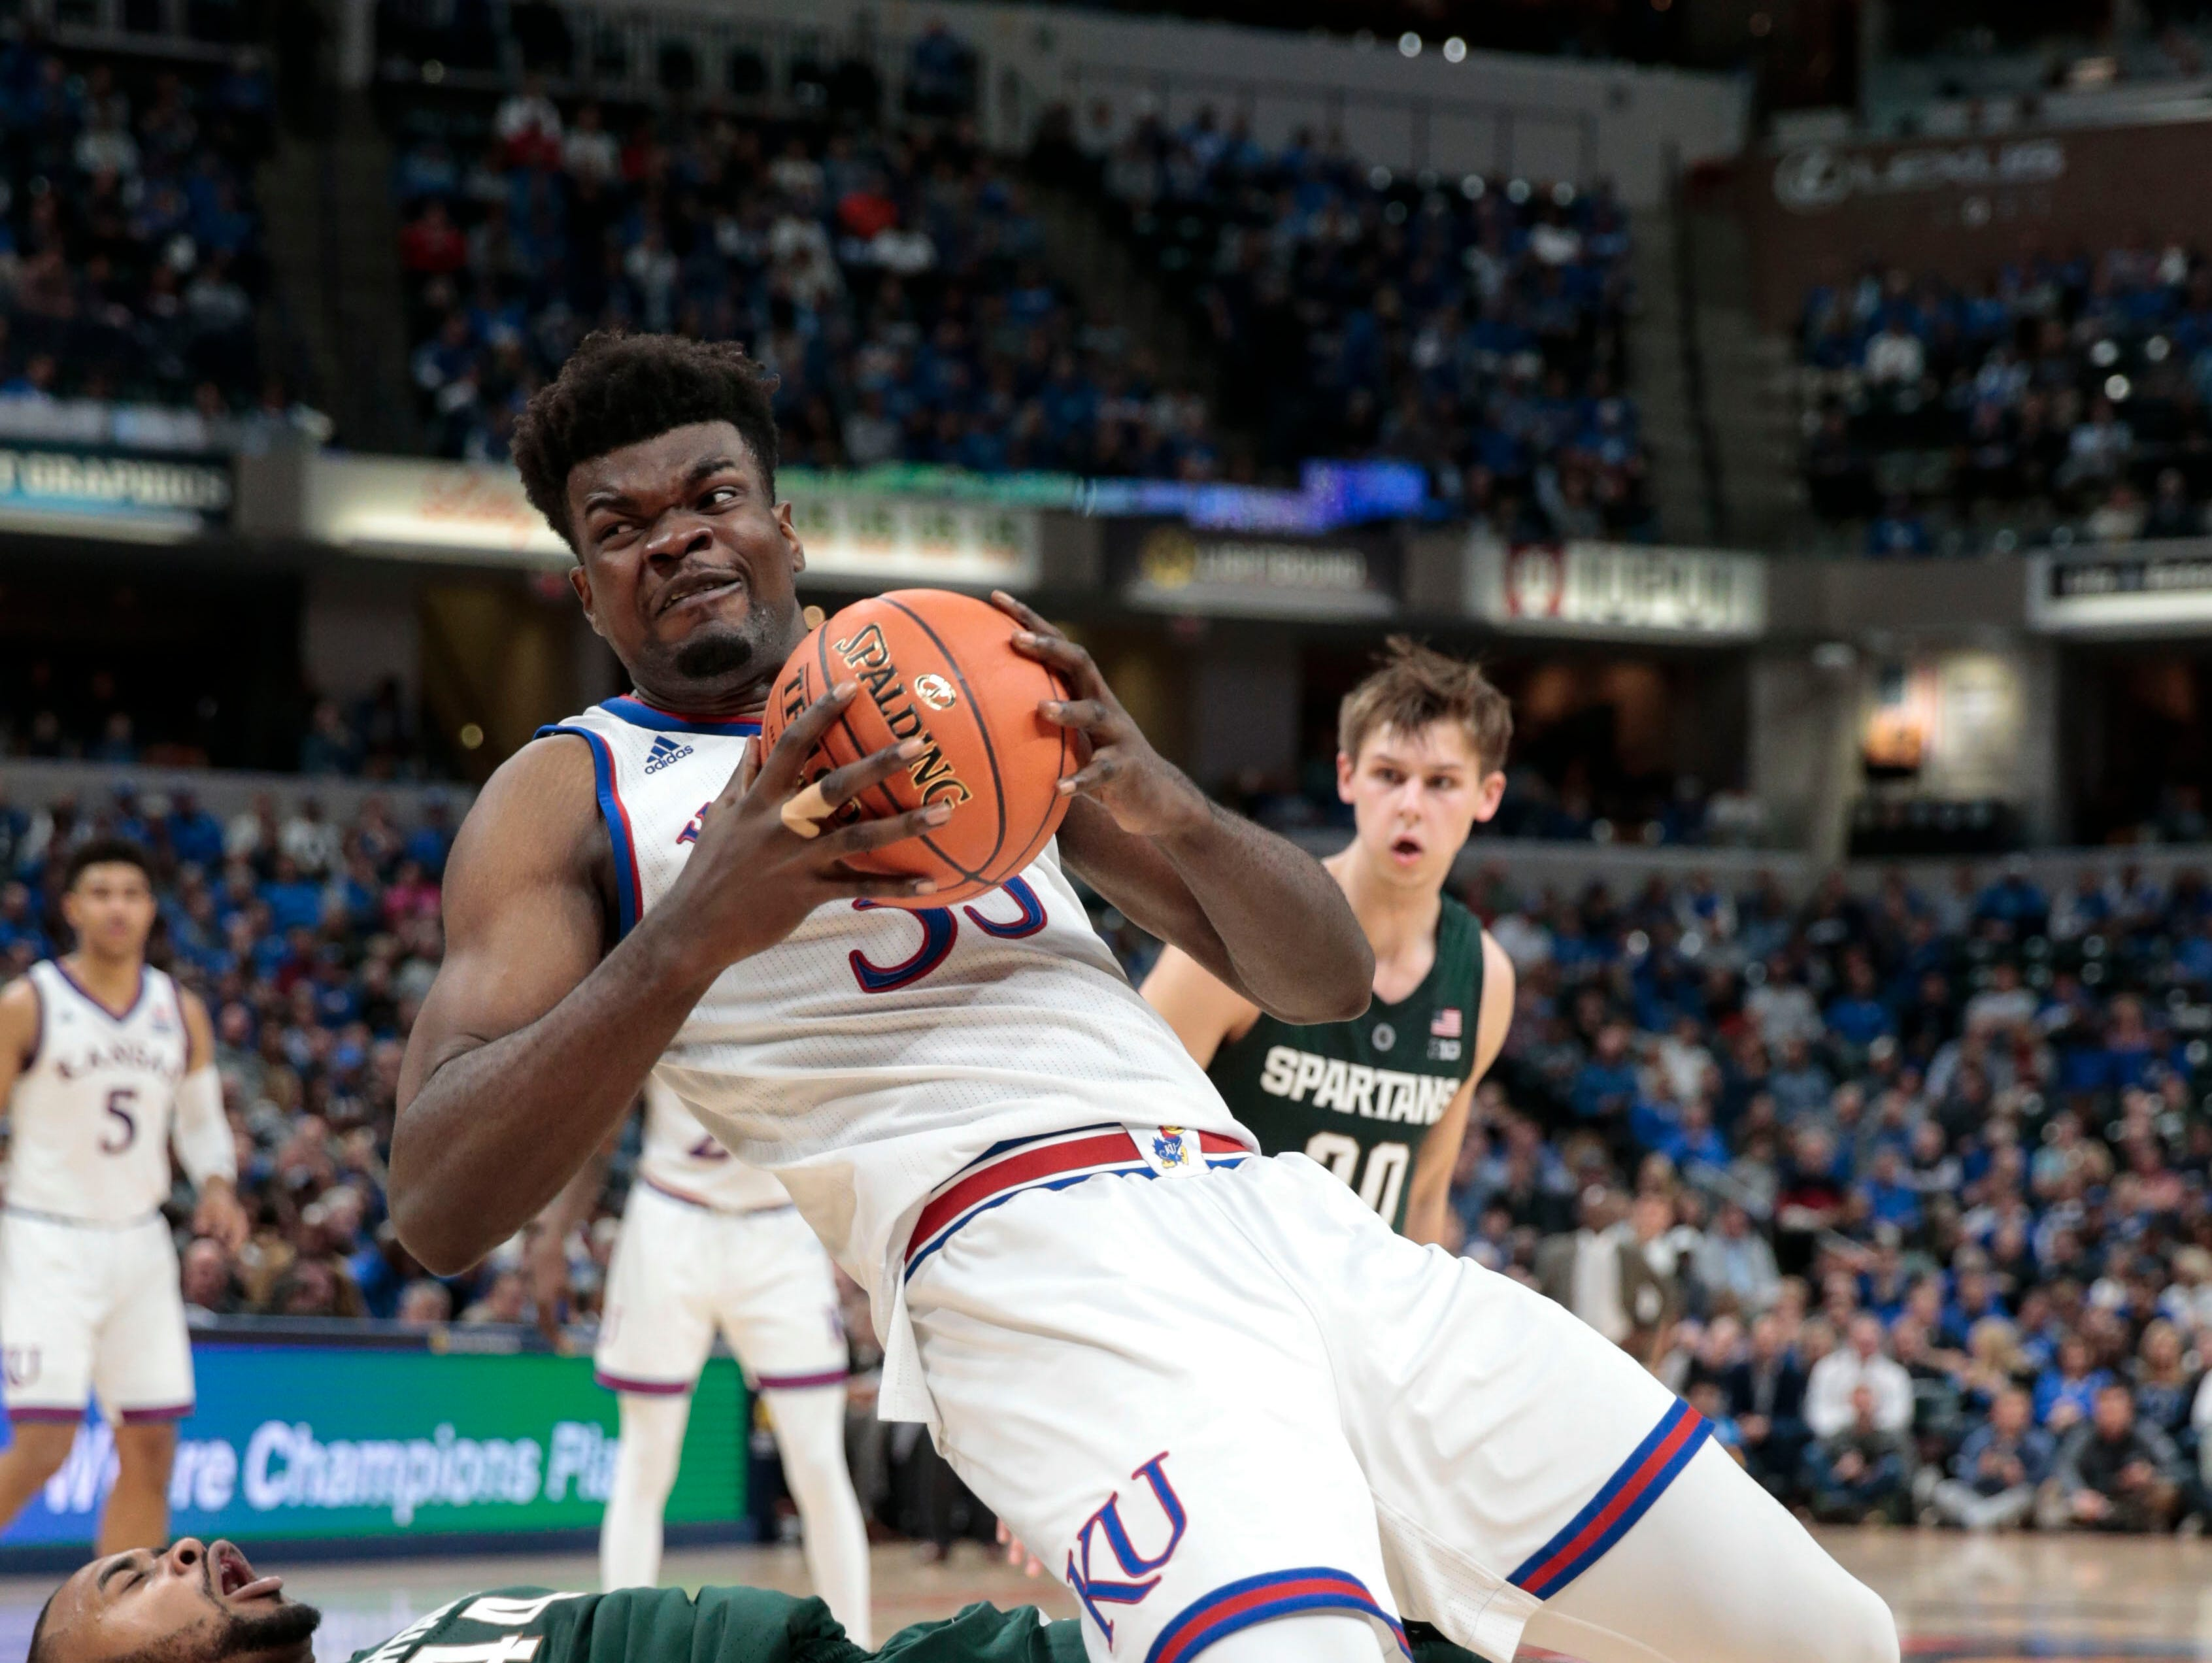 Kansas center Udoka Azubuike (35) fouls Michigan State forward Nick Ward (44) during the second half of an NCAA college basketball game at the Champions Classic in Indianapolis on Tuesday, Nov. 6, 2018. Kansas won 92-87.